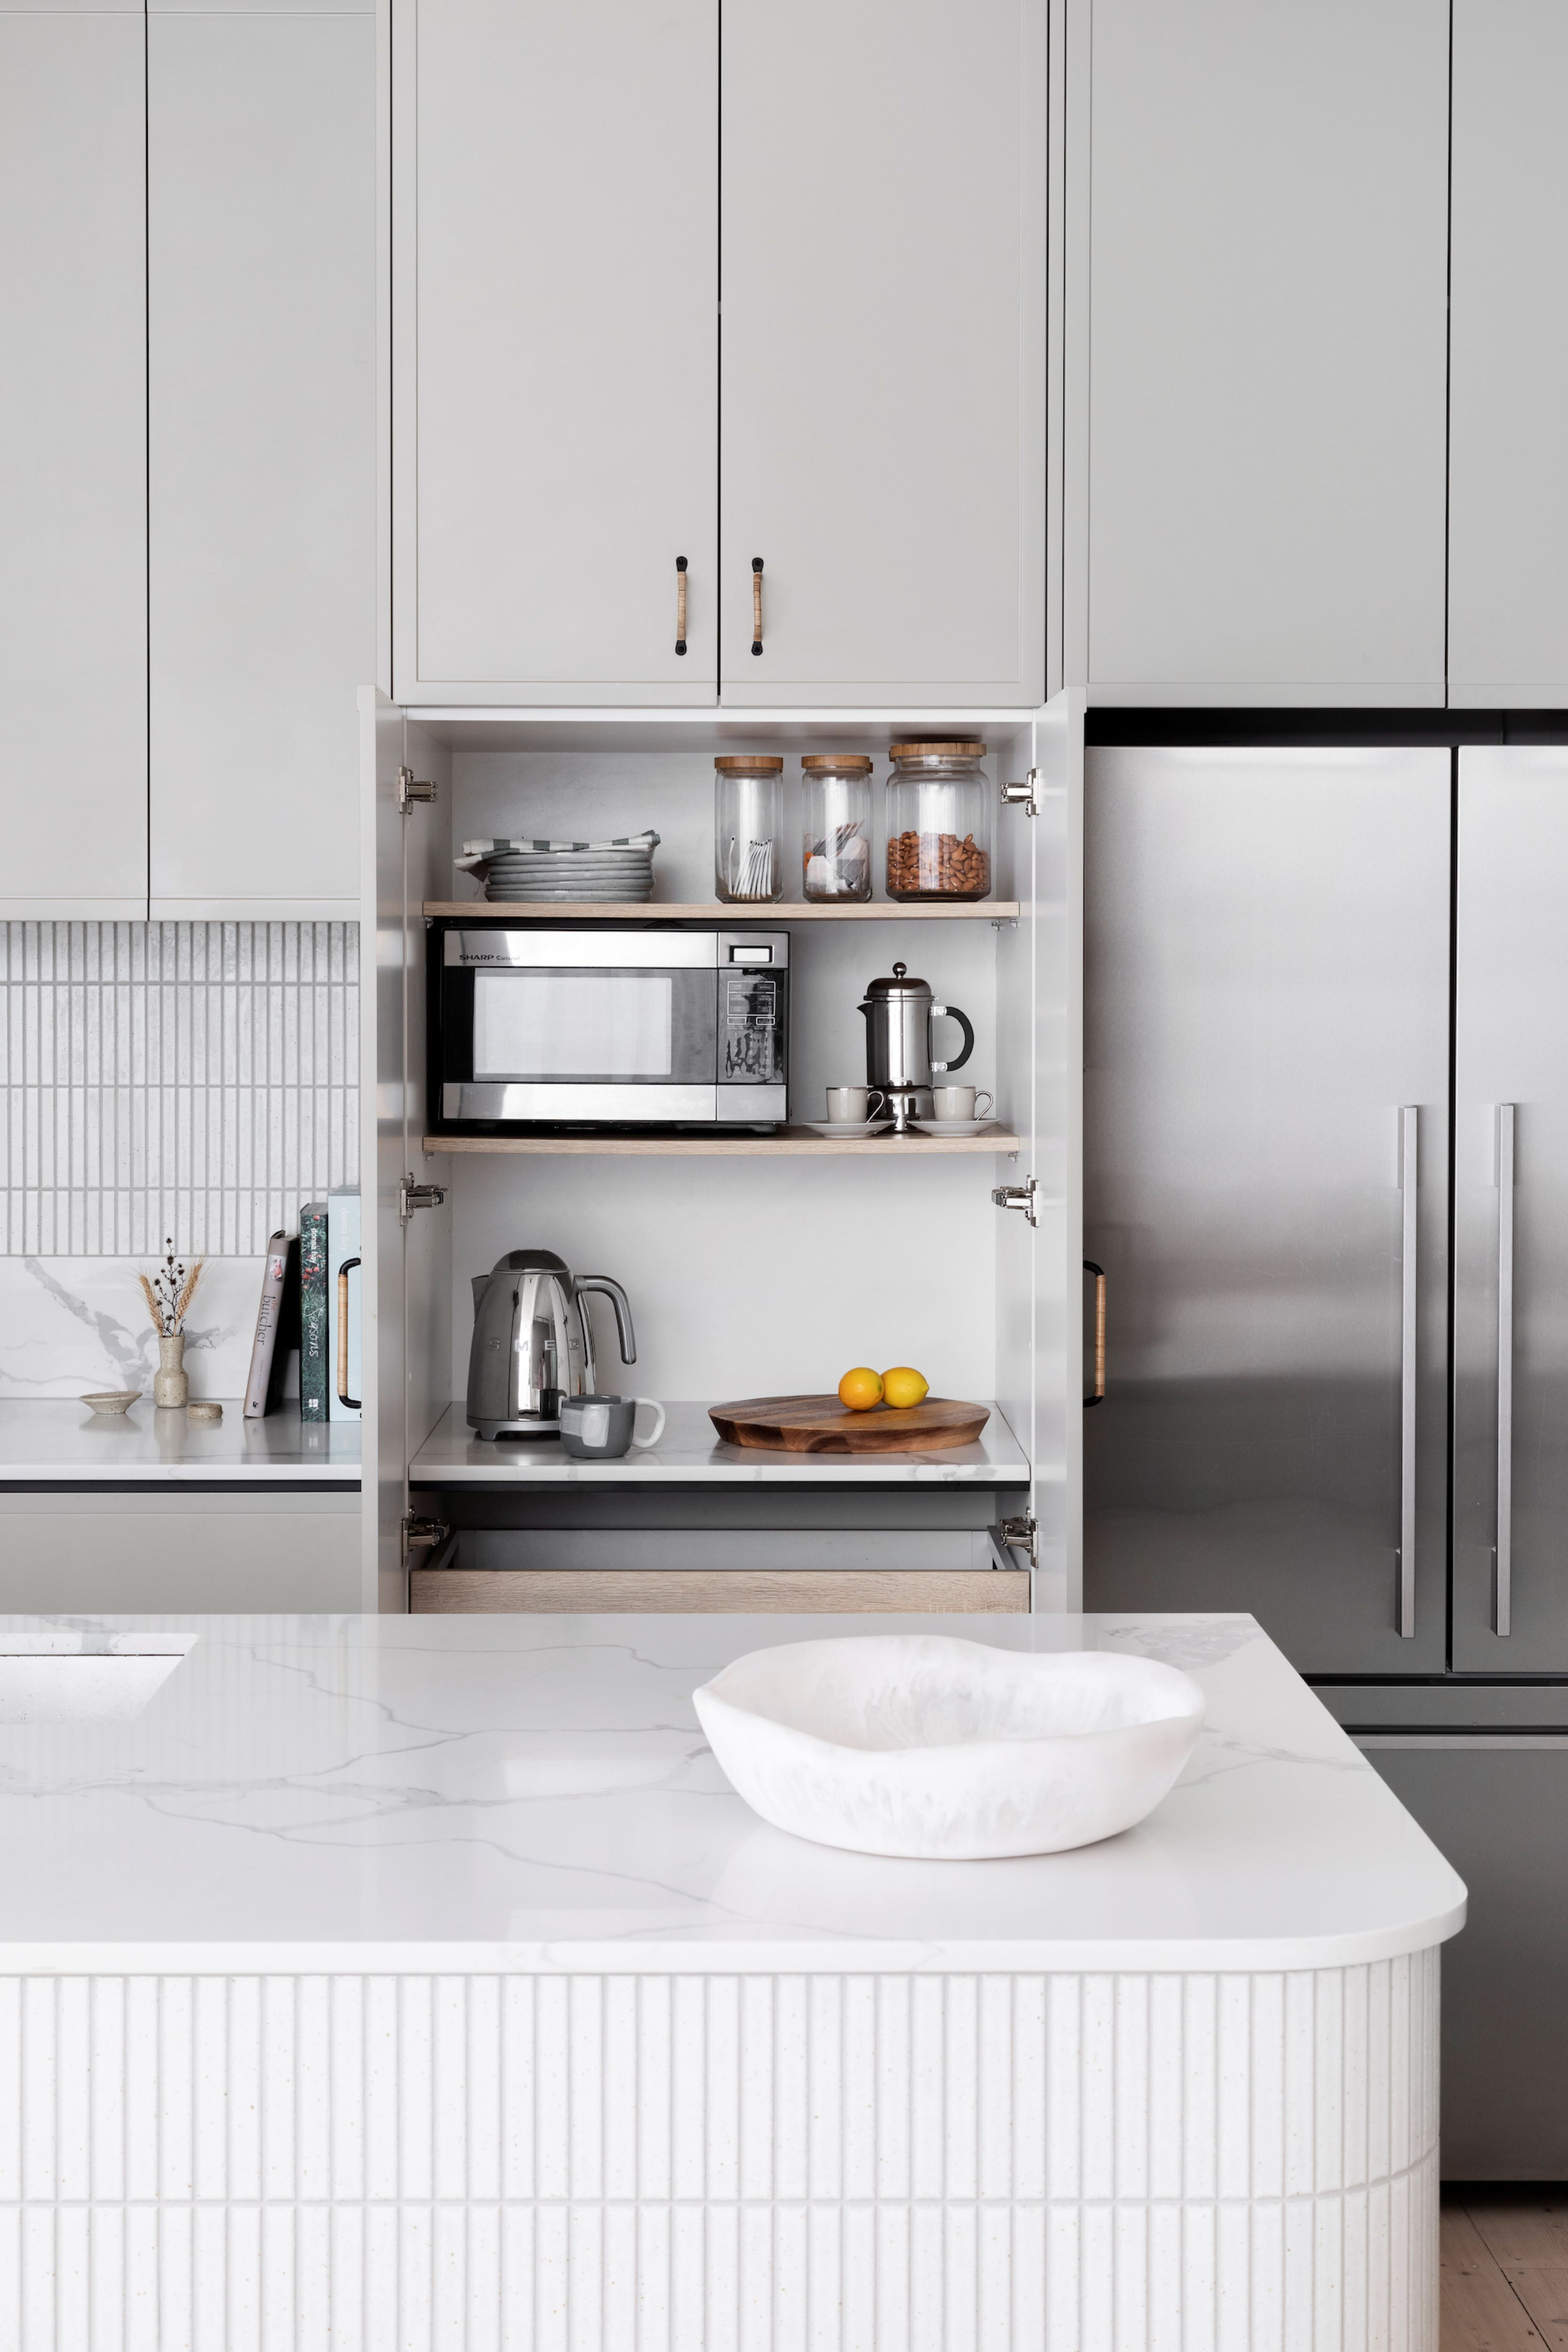 Alison Lewis Interiors Cecil Street Project Kitchen Appliance Cupboard